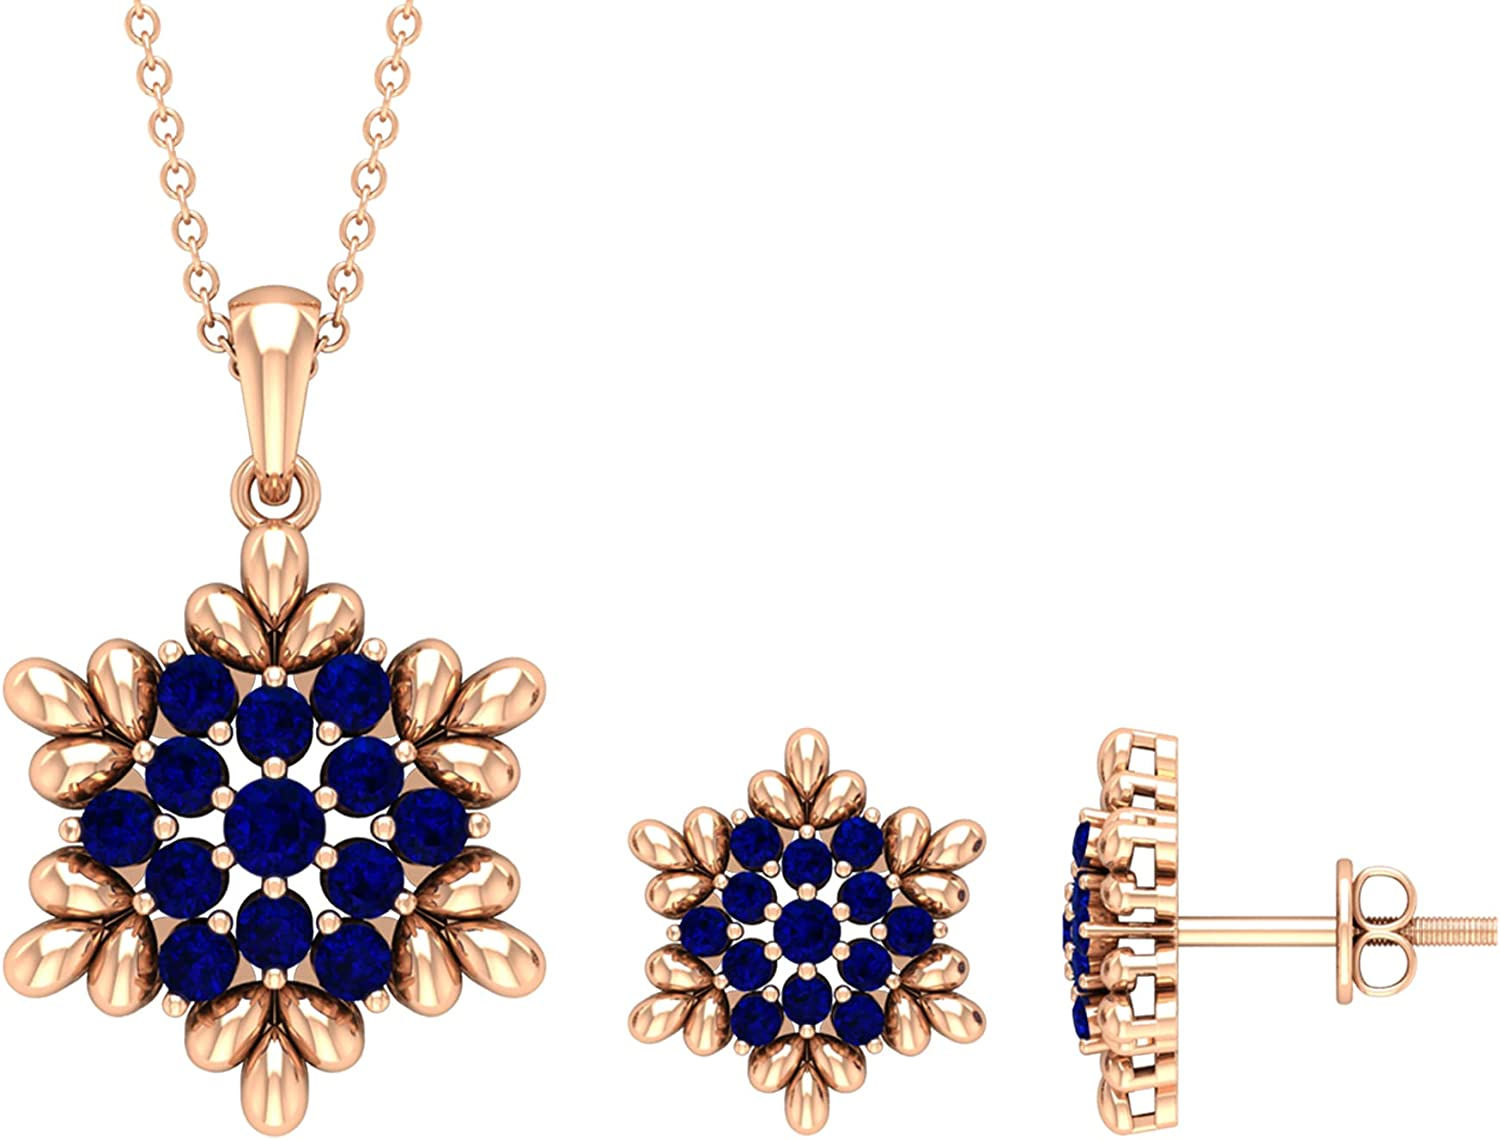 September Birthstone - 1.25 CT Blue Sapphire and Gold Flower Jewelry Set (AAA Quality), 14K Solid Gold, With Chain